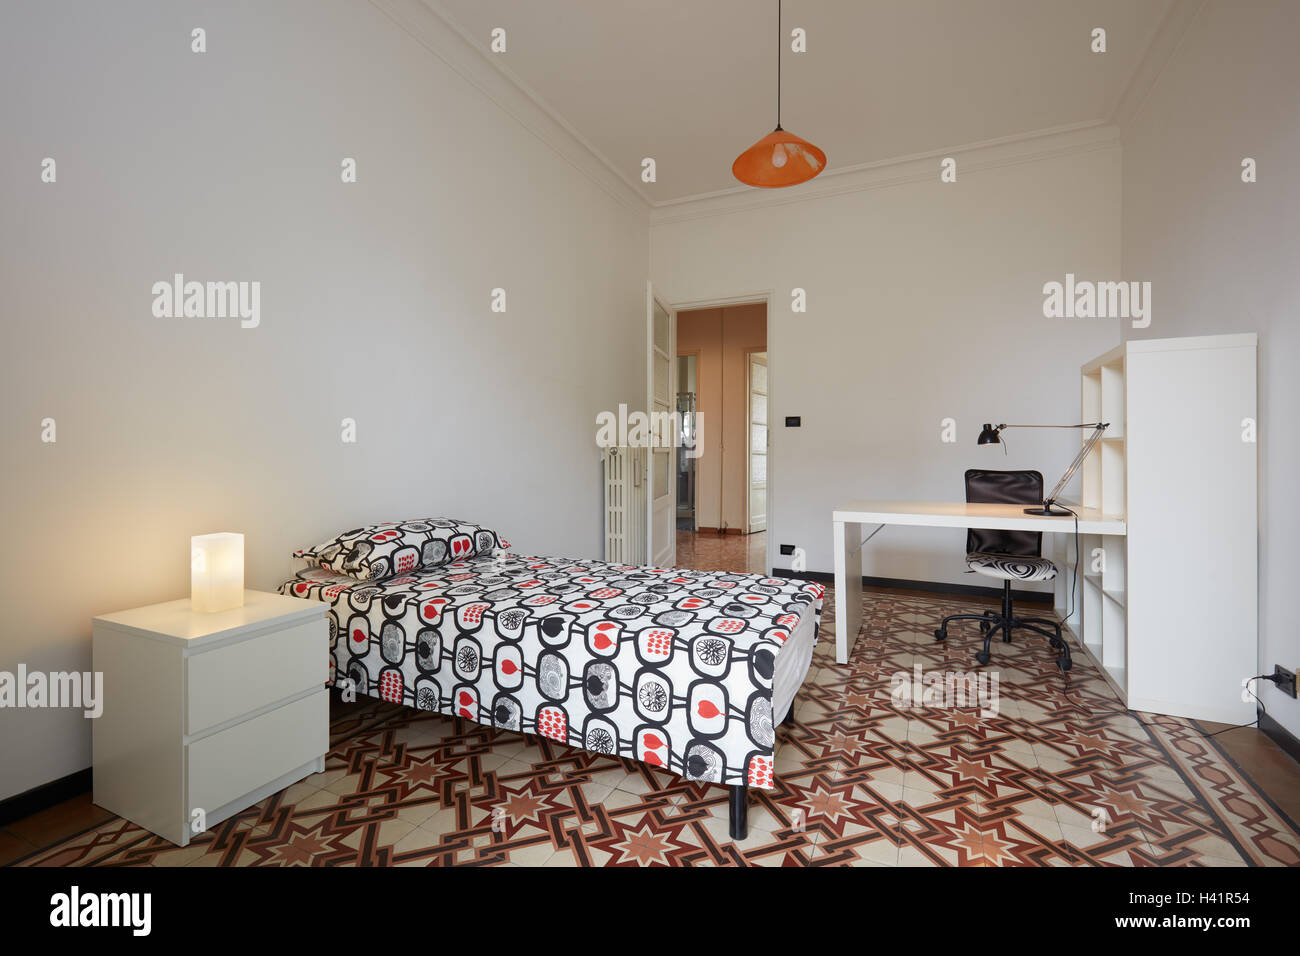 Bedroom interior with single bed in normal apartment - Stock Image